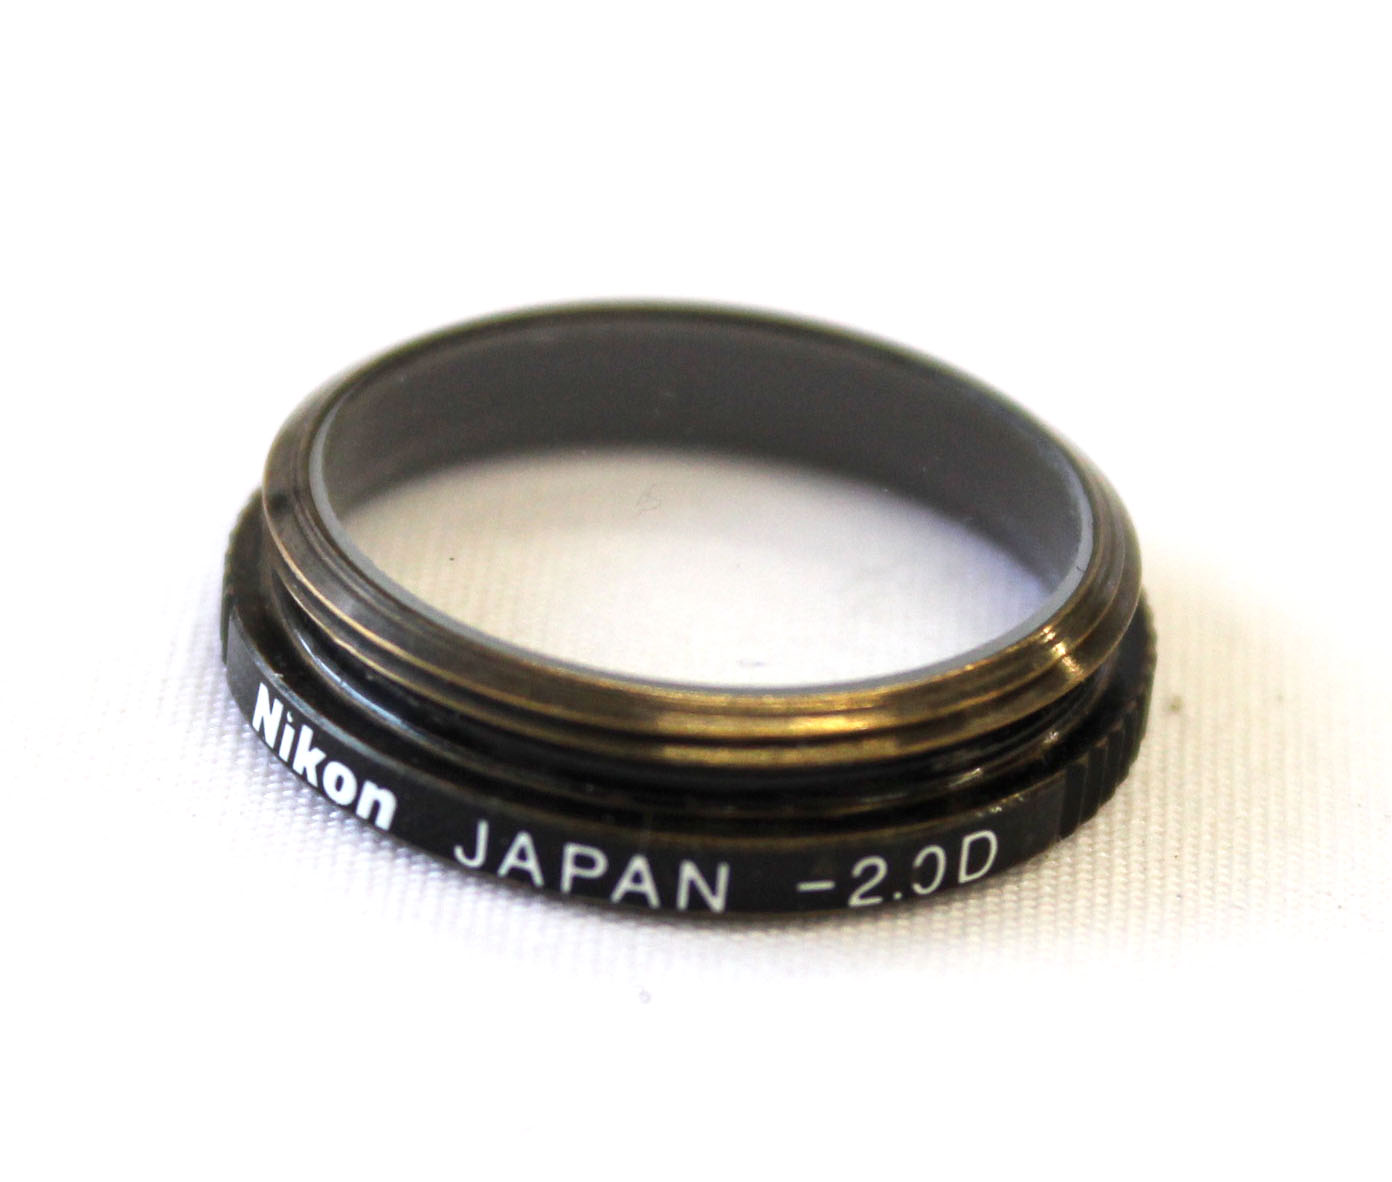 Nikon Eyepiece Correction Lens -2.0 Diopter for Nikon FA, FE2, FM2, FE, FM from Japan Photo 1